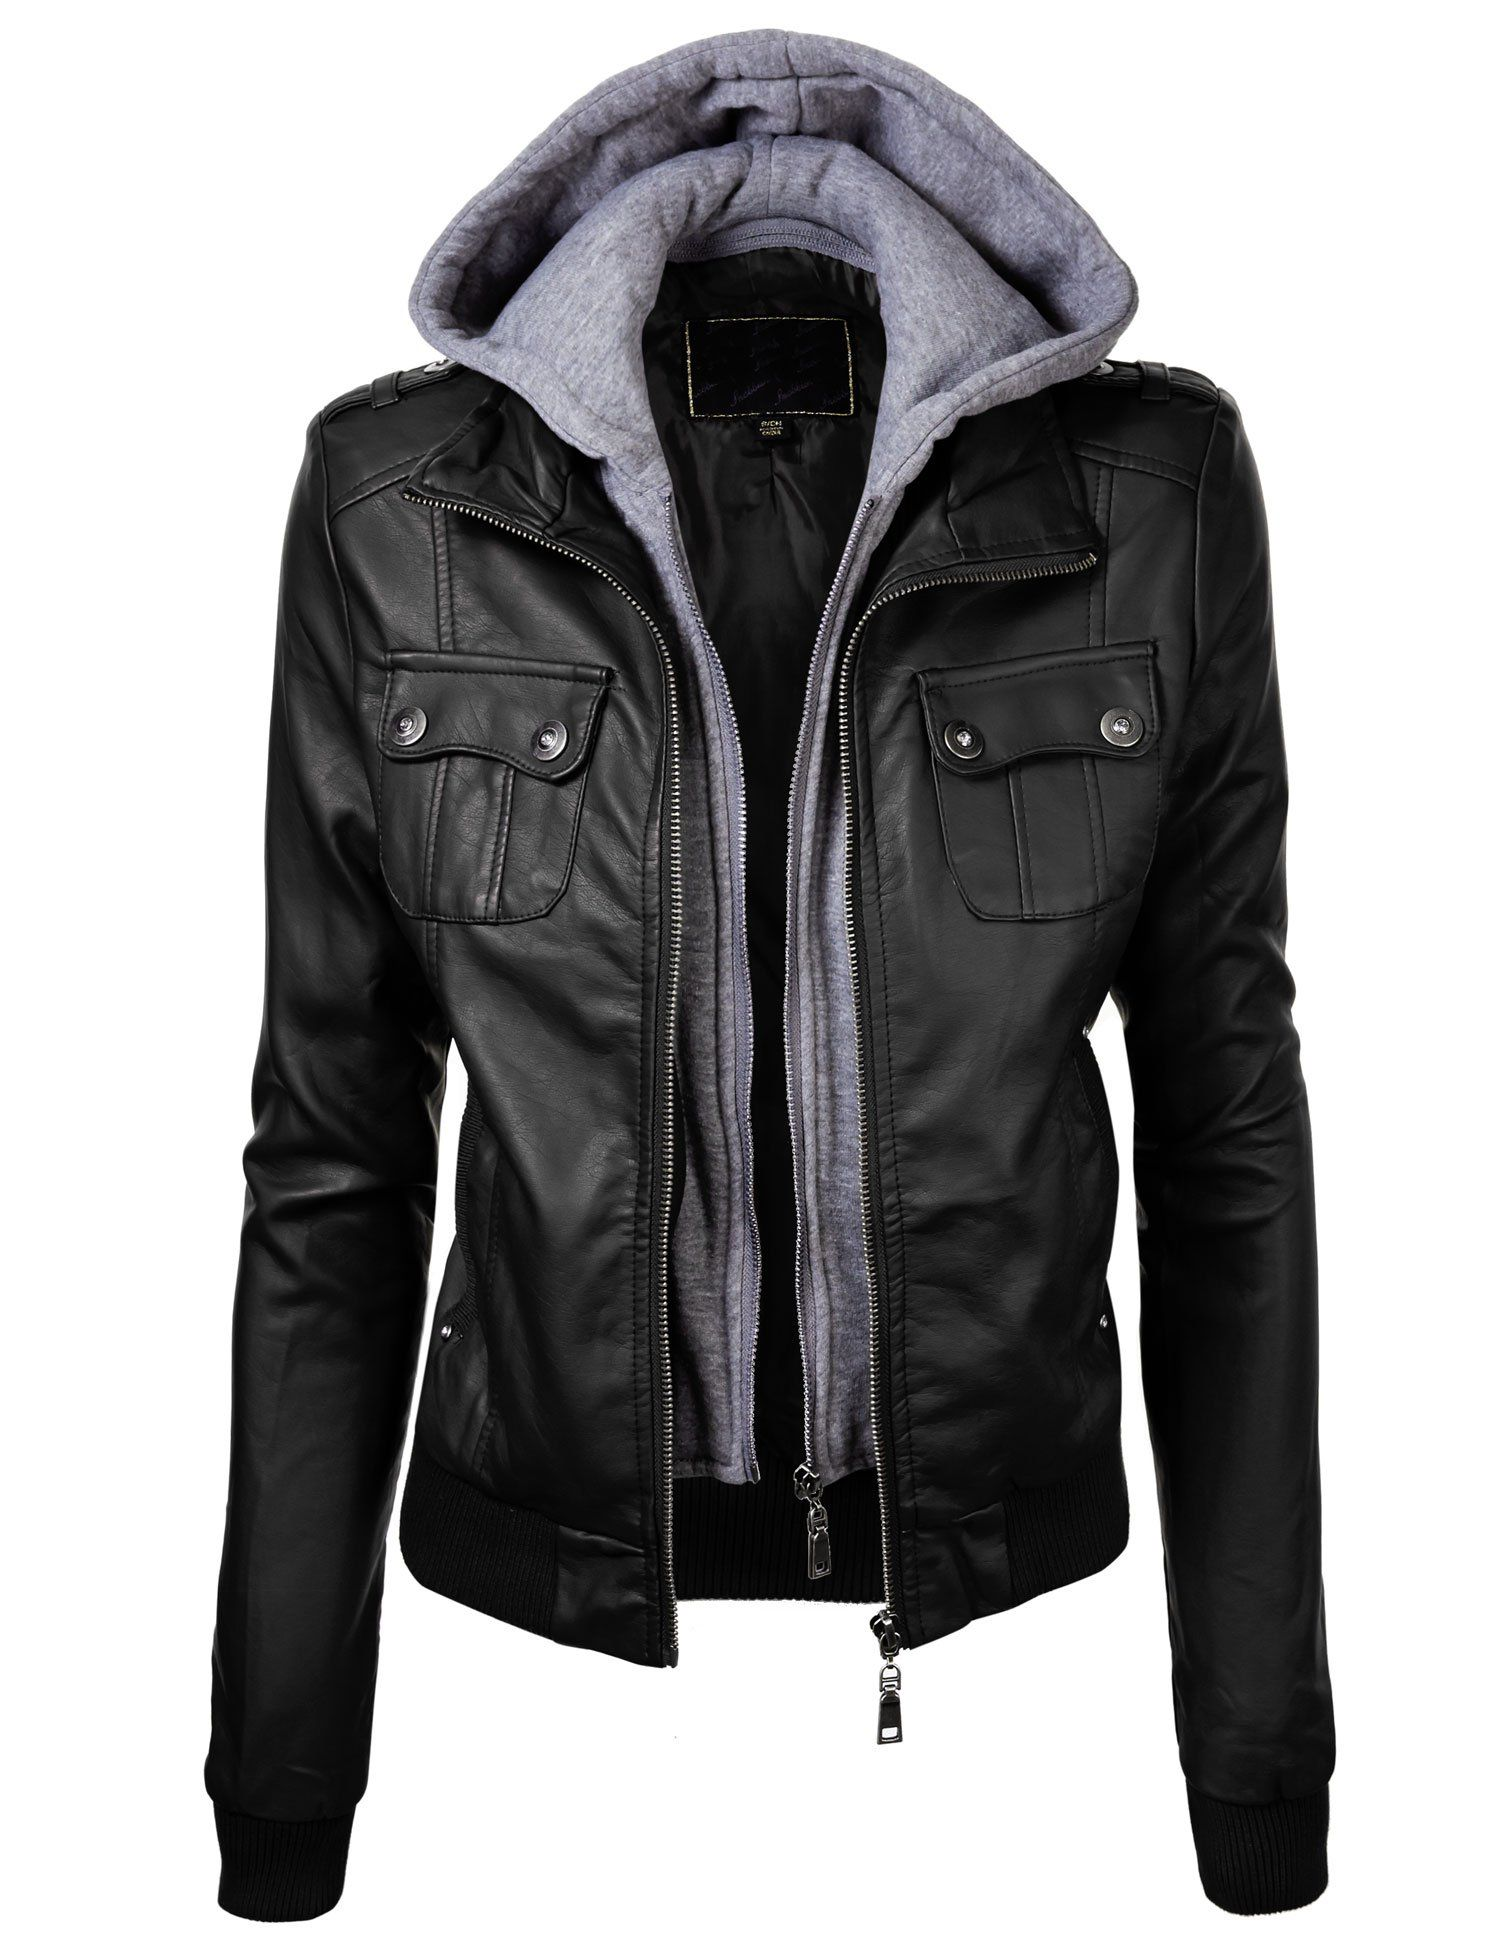 81d46064feae4 Lock and Love Women s Double Hoodie Faux Leather Jacket L BLACK ...